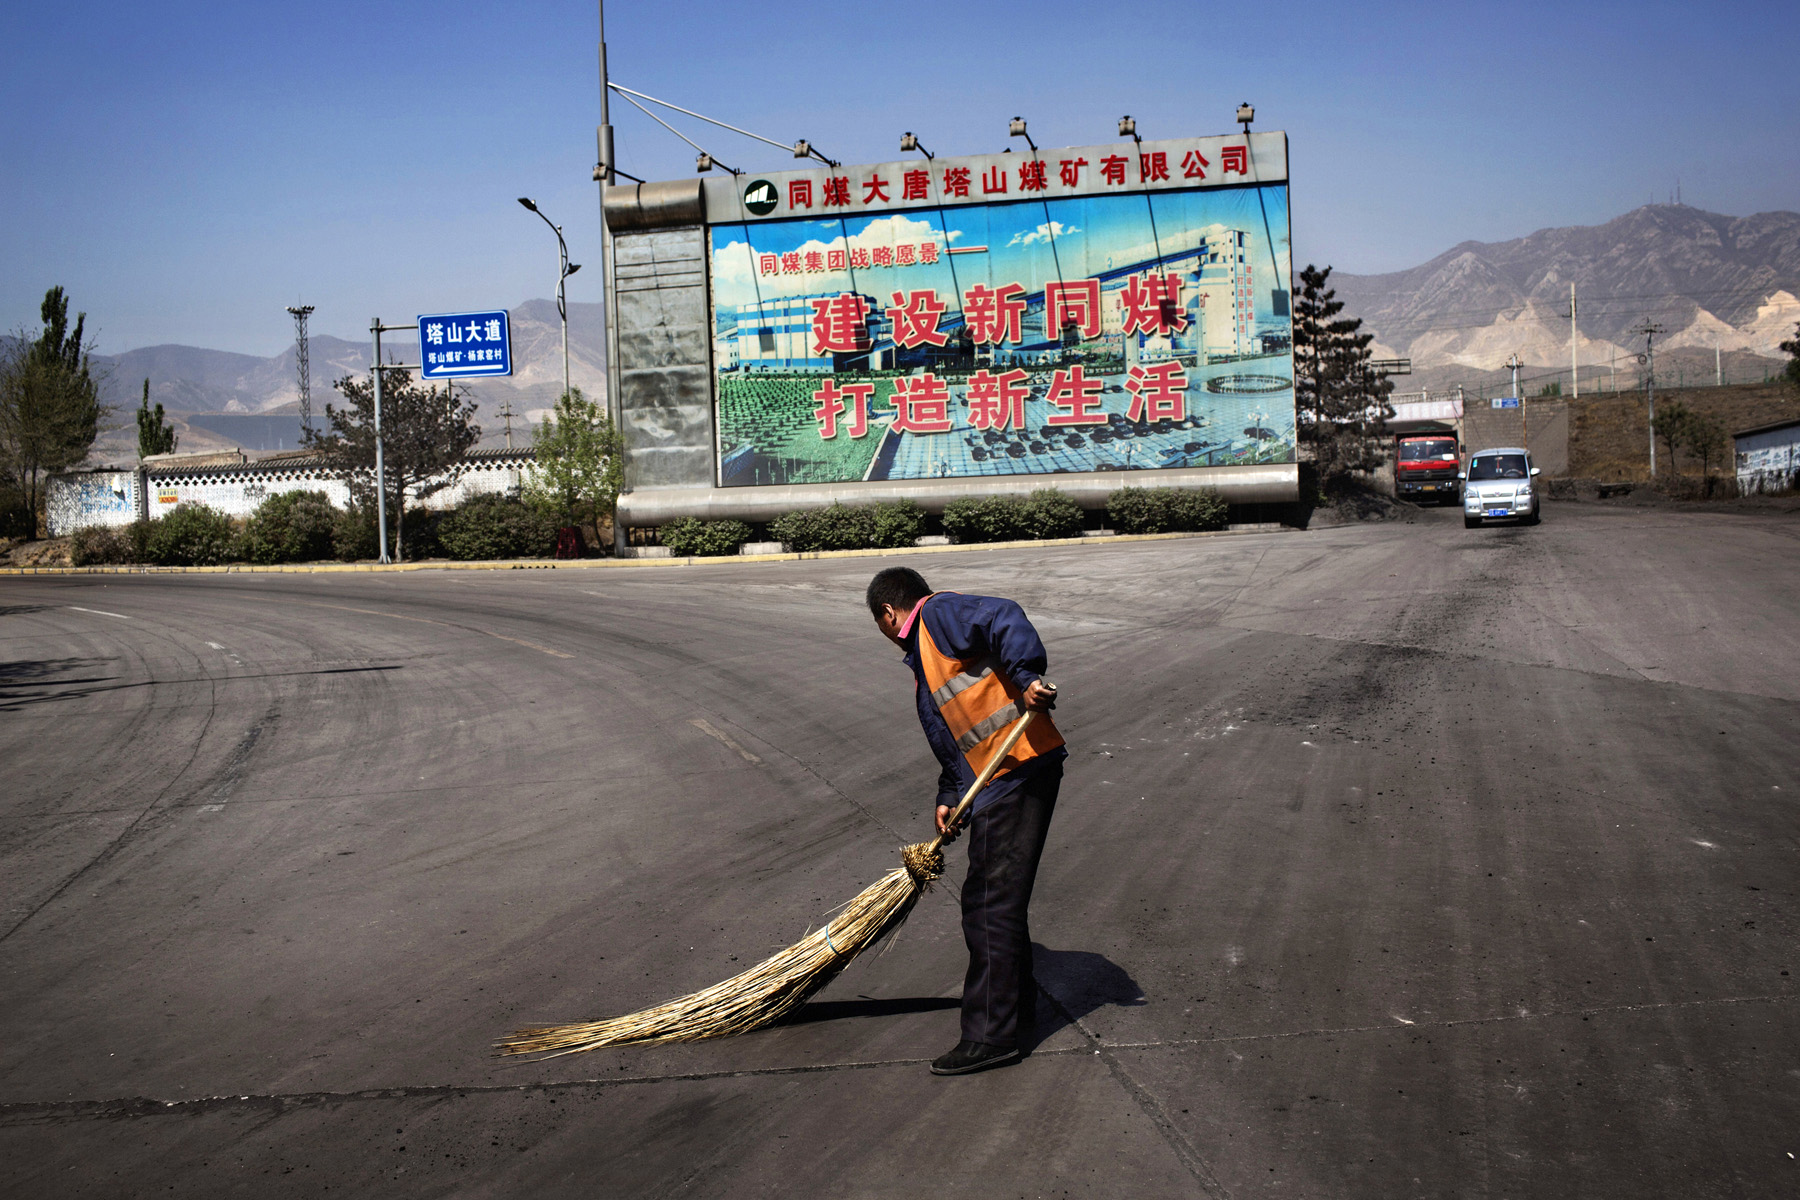 A worker sweeps coal dust in front of a billboard